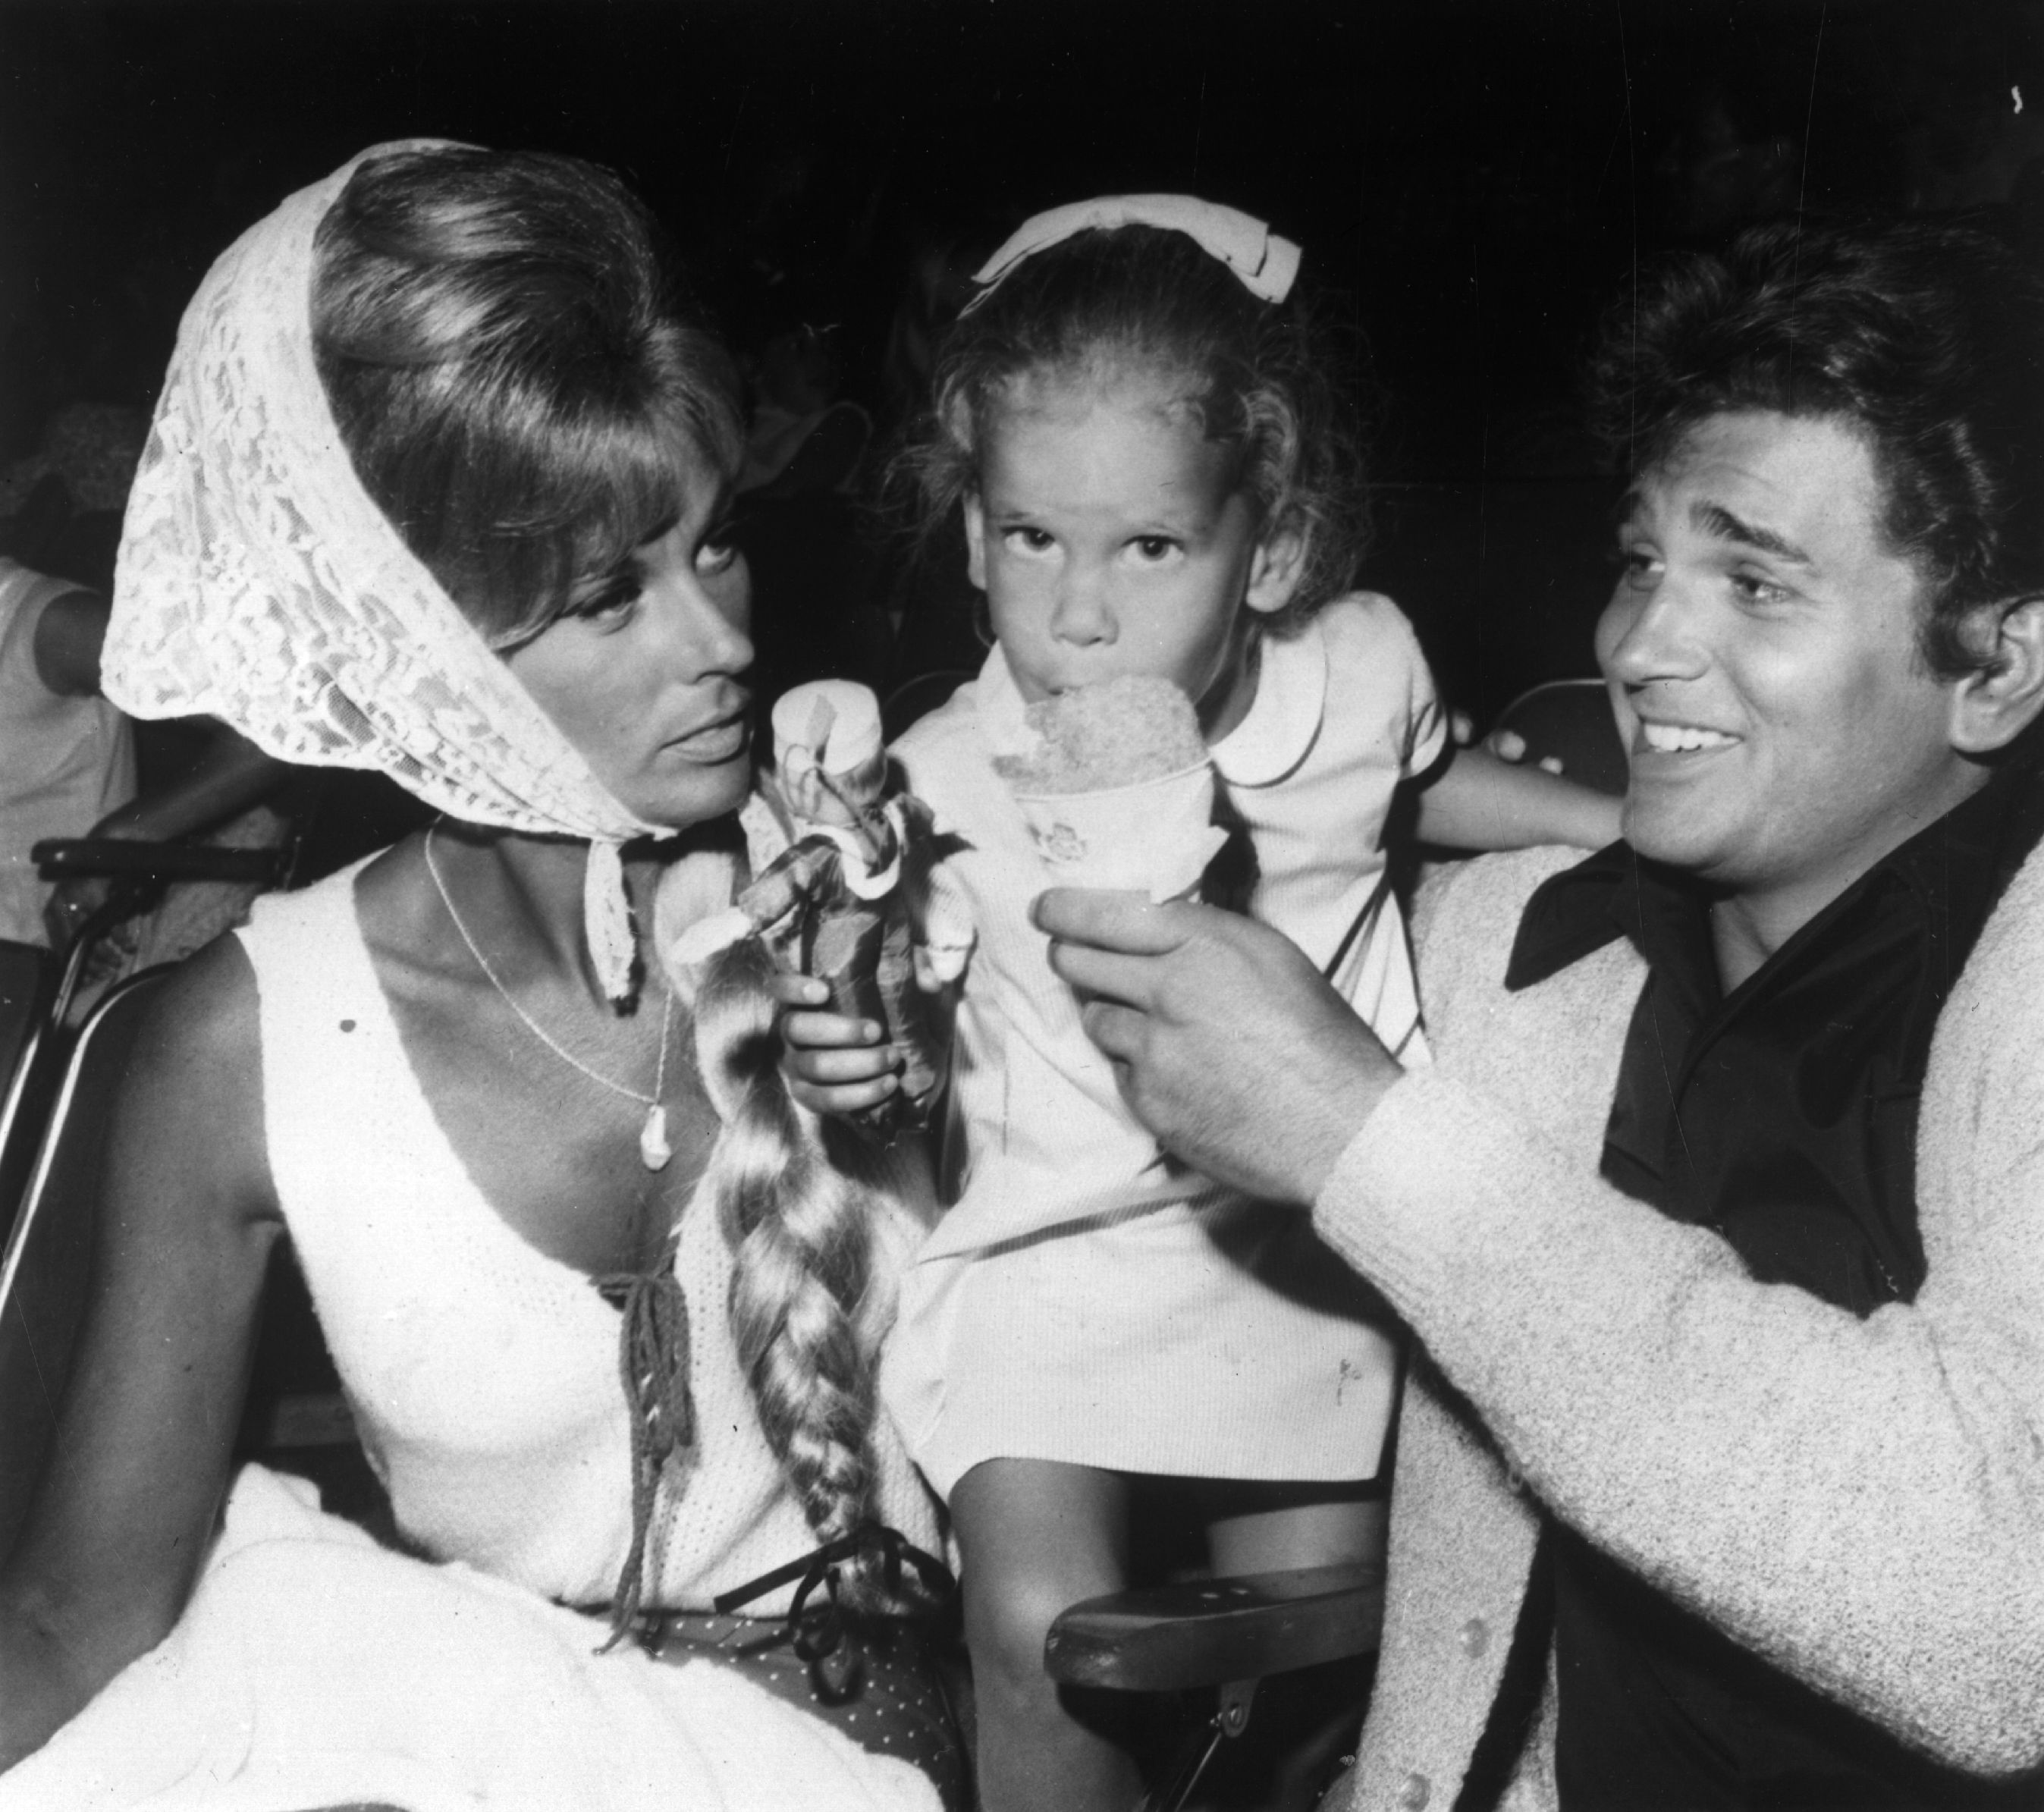 Michael Landonwith his wife Lynn and their daughter Lesley, who is Rachel Matthew's mother in 1965 | Source: Getty Images